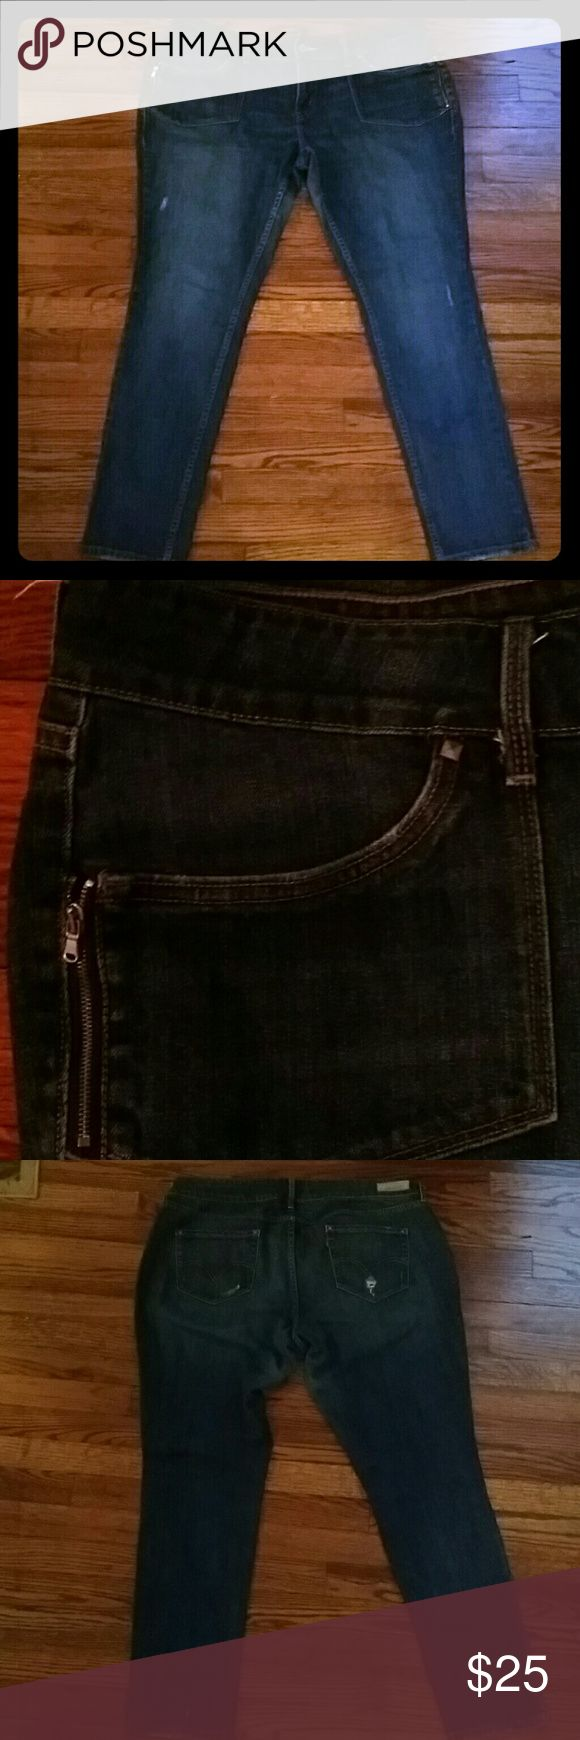 Levi's skinny jeans Skinny jeans. Zipper front pockets. Distressed back pockets.  Great condition. Levi's Jeans Skinny